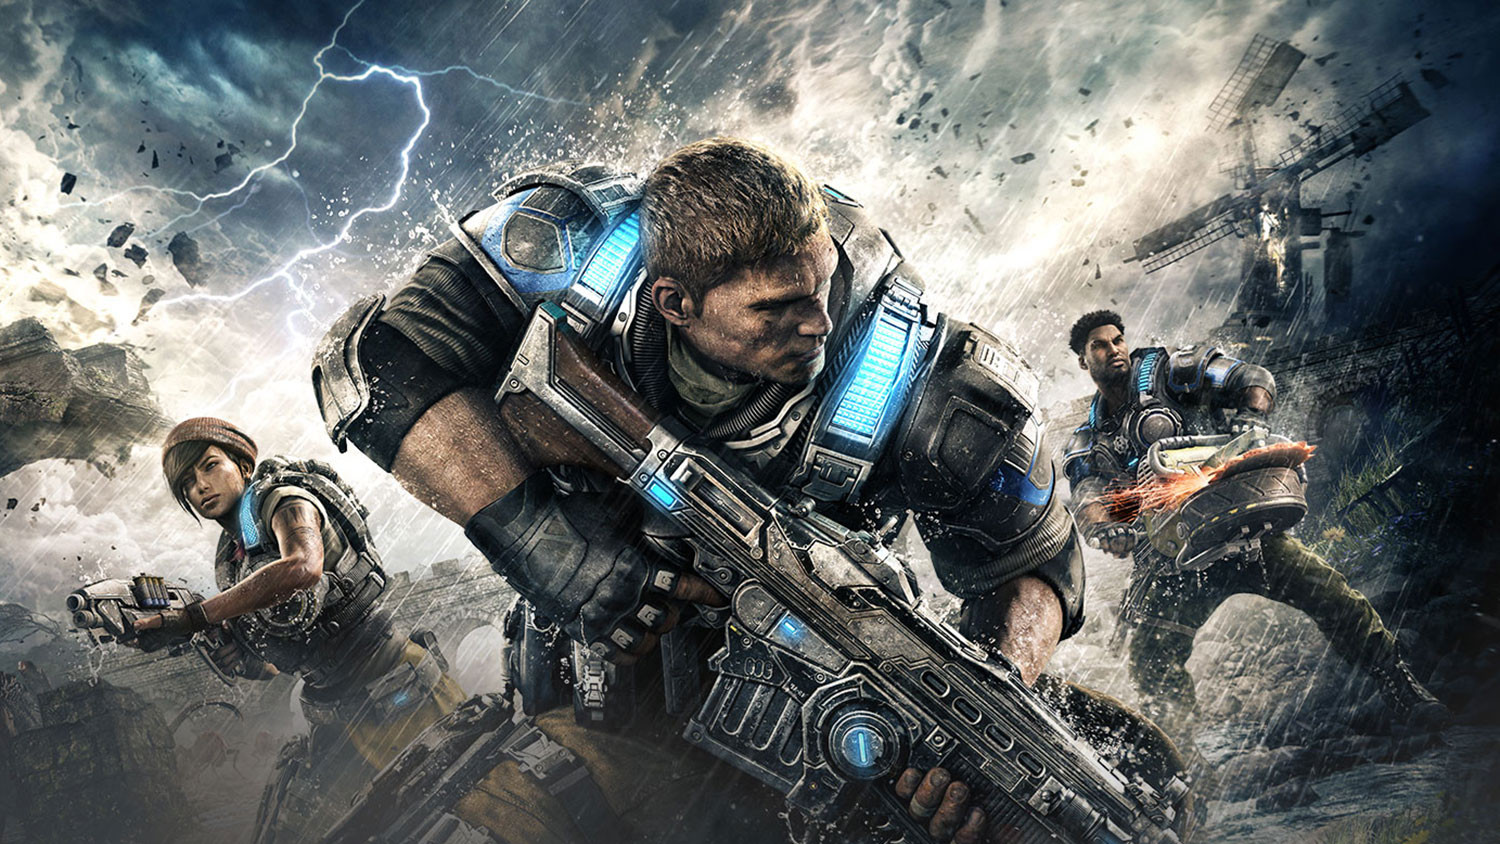 Every GTX 1070/1080 sold comes with a free 'Gears of War 4' on PC, Xbox One